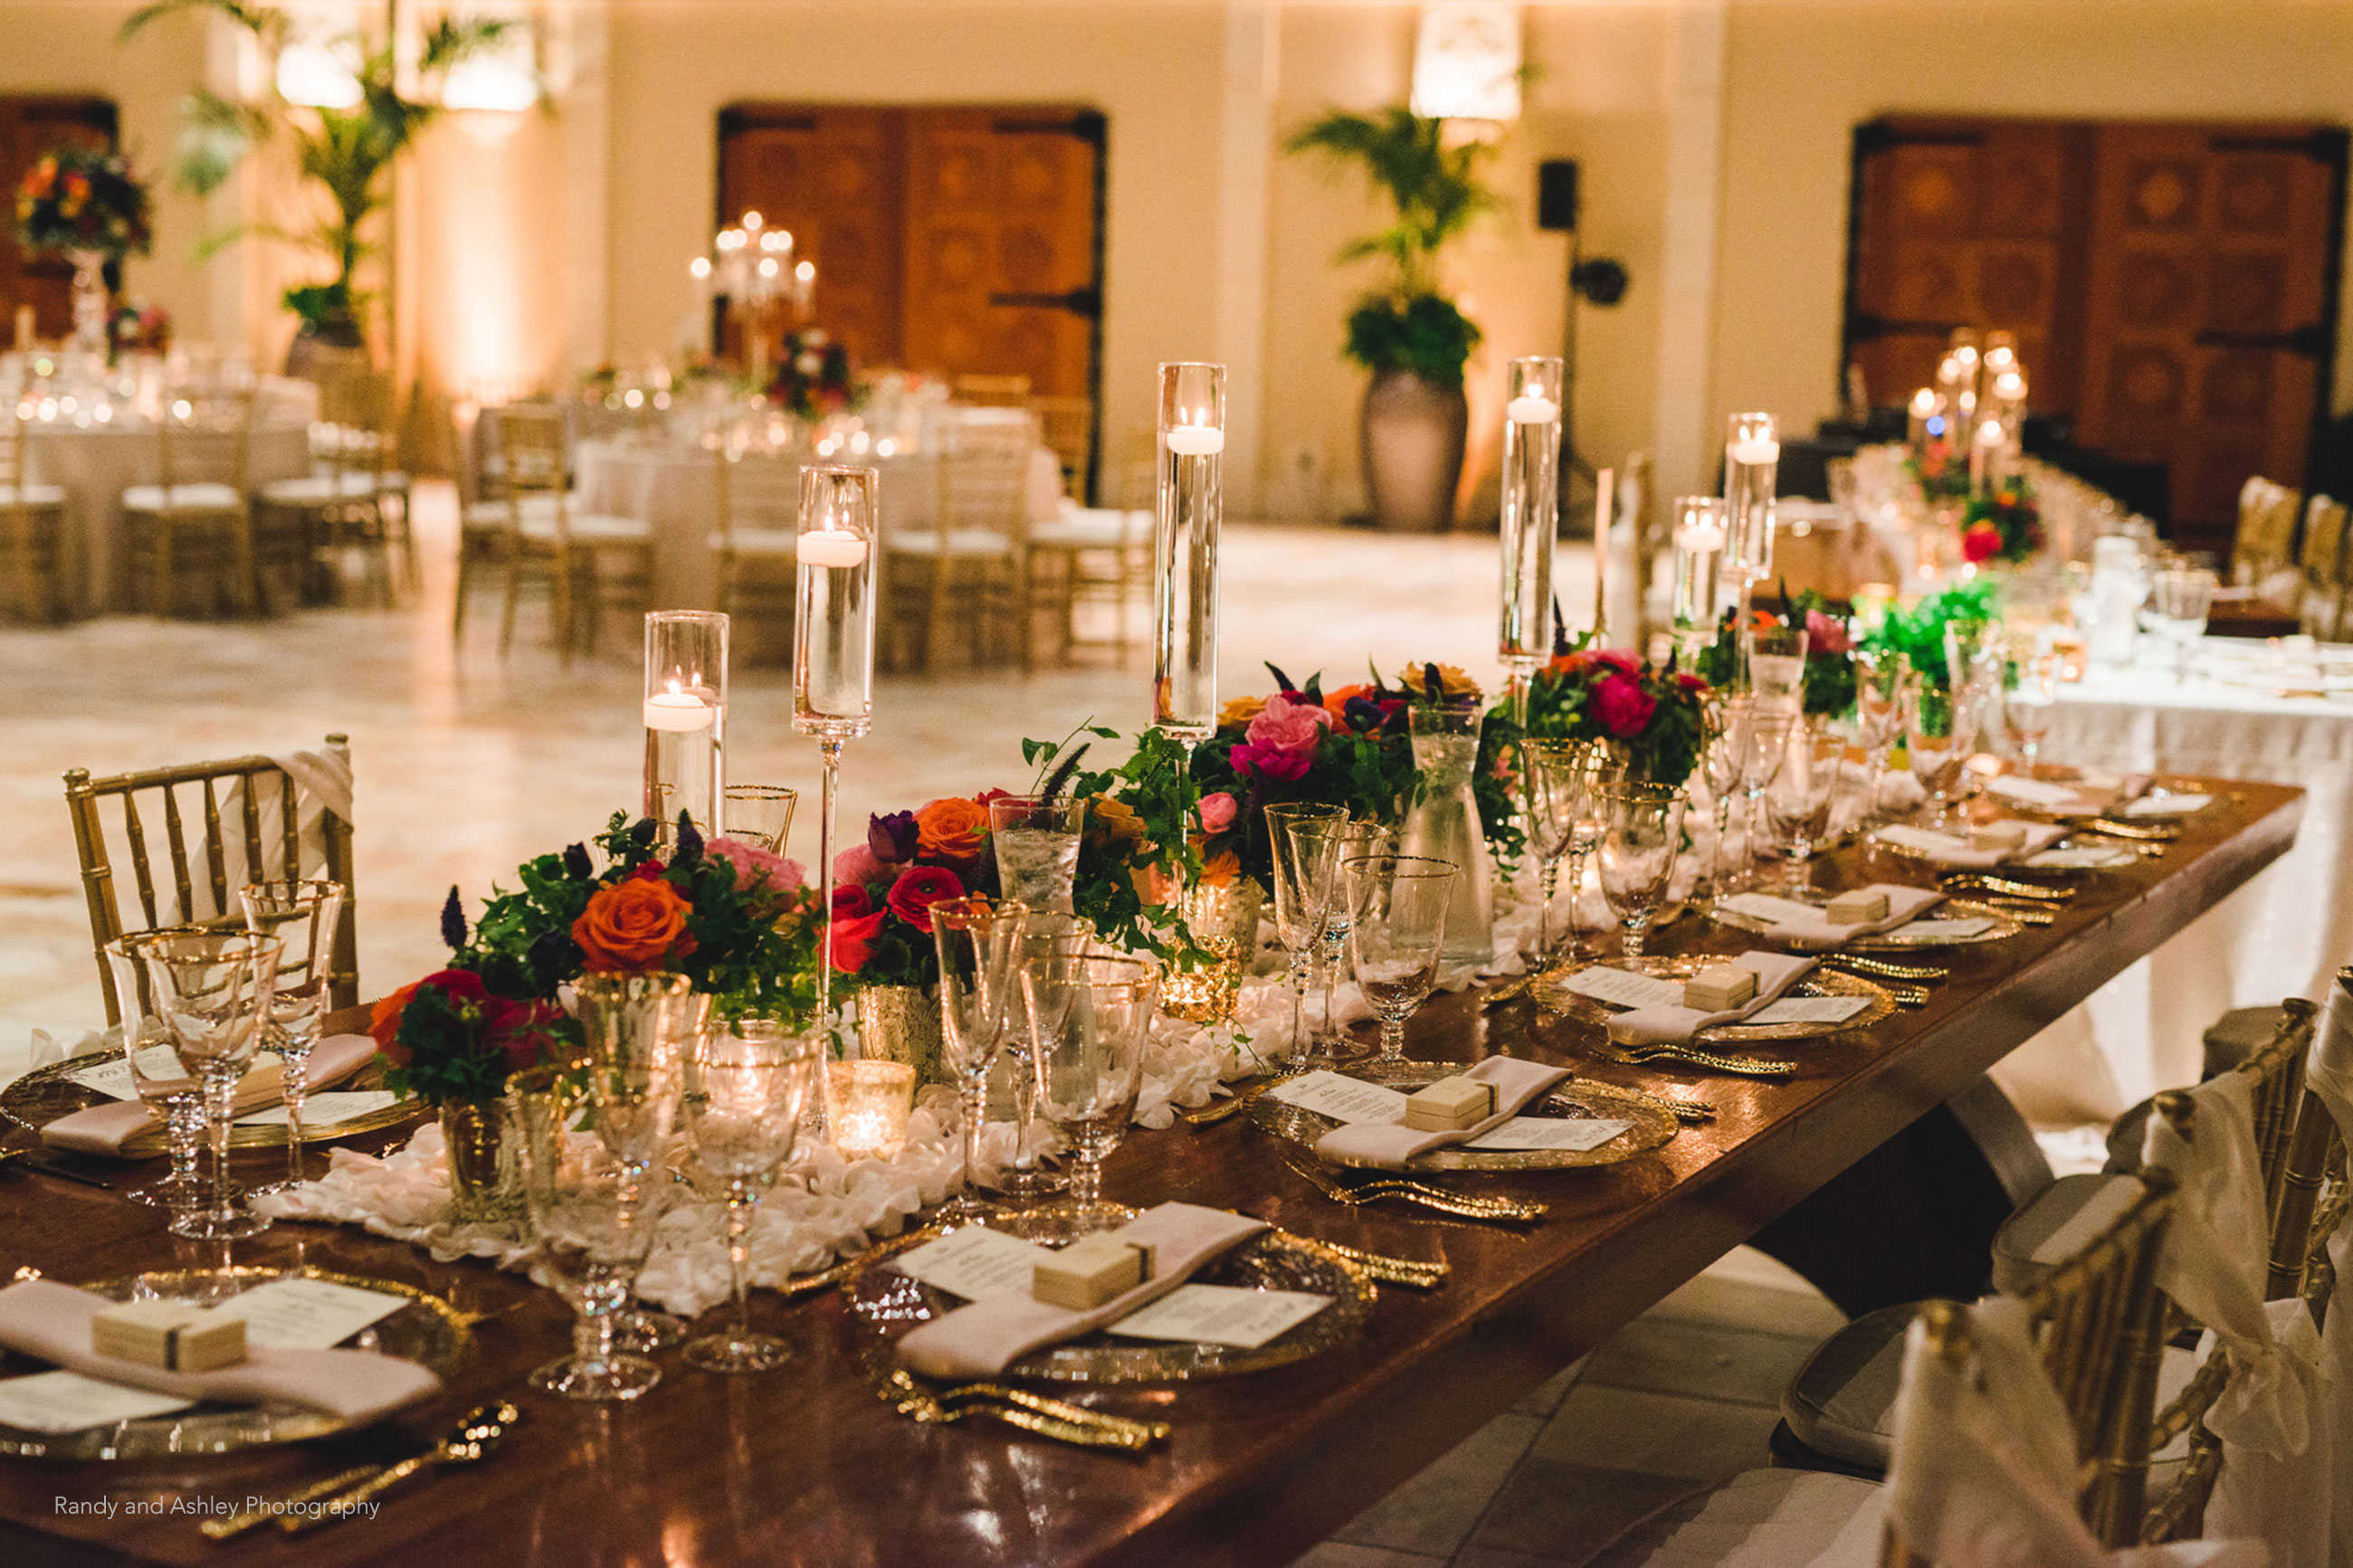 Elegant candlelit wedding reception table with gold and roses at Casa Real at Ruby Hill Winery (www.casarealevents.com).  Photo by: Randy and Ashley Photography; Florals: Enchantment Floral; Linens: Napa Valley Linen; Glassware, Flatware and Chargers: Pleasanton Rentals